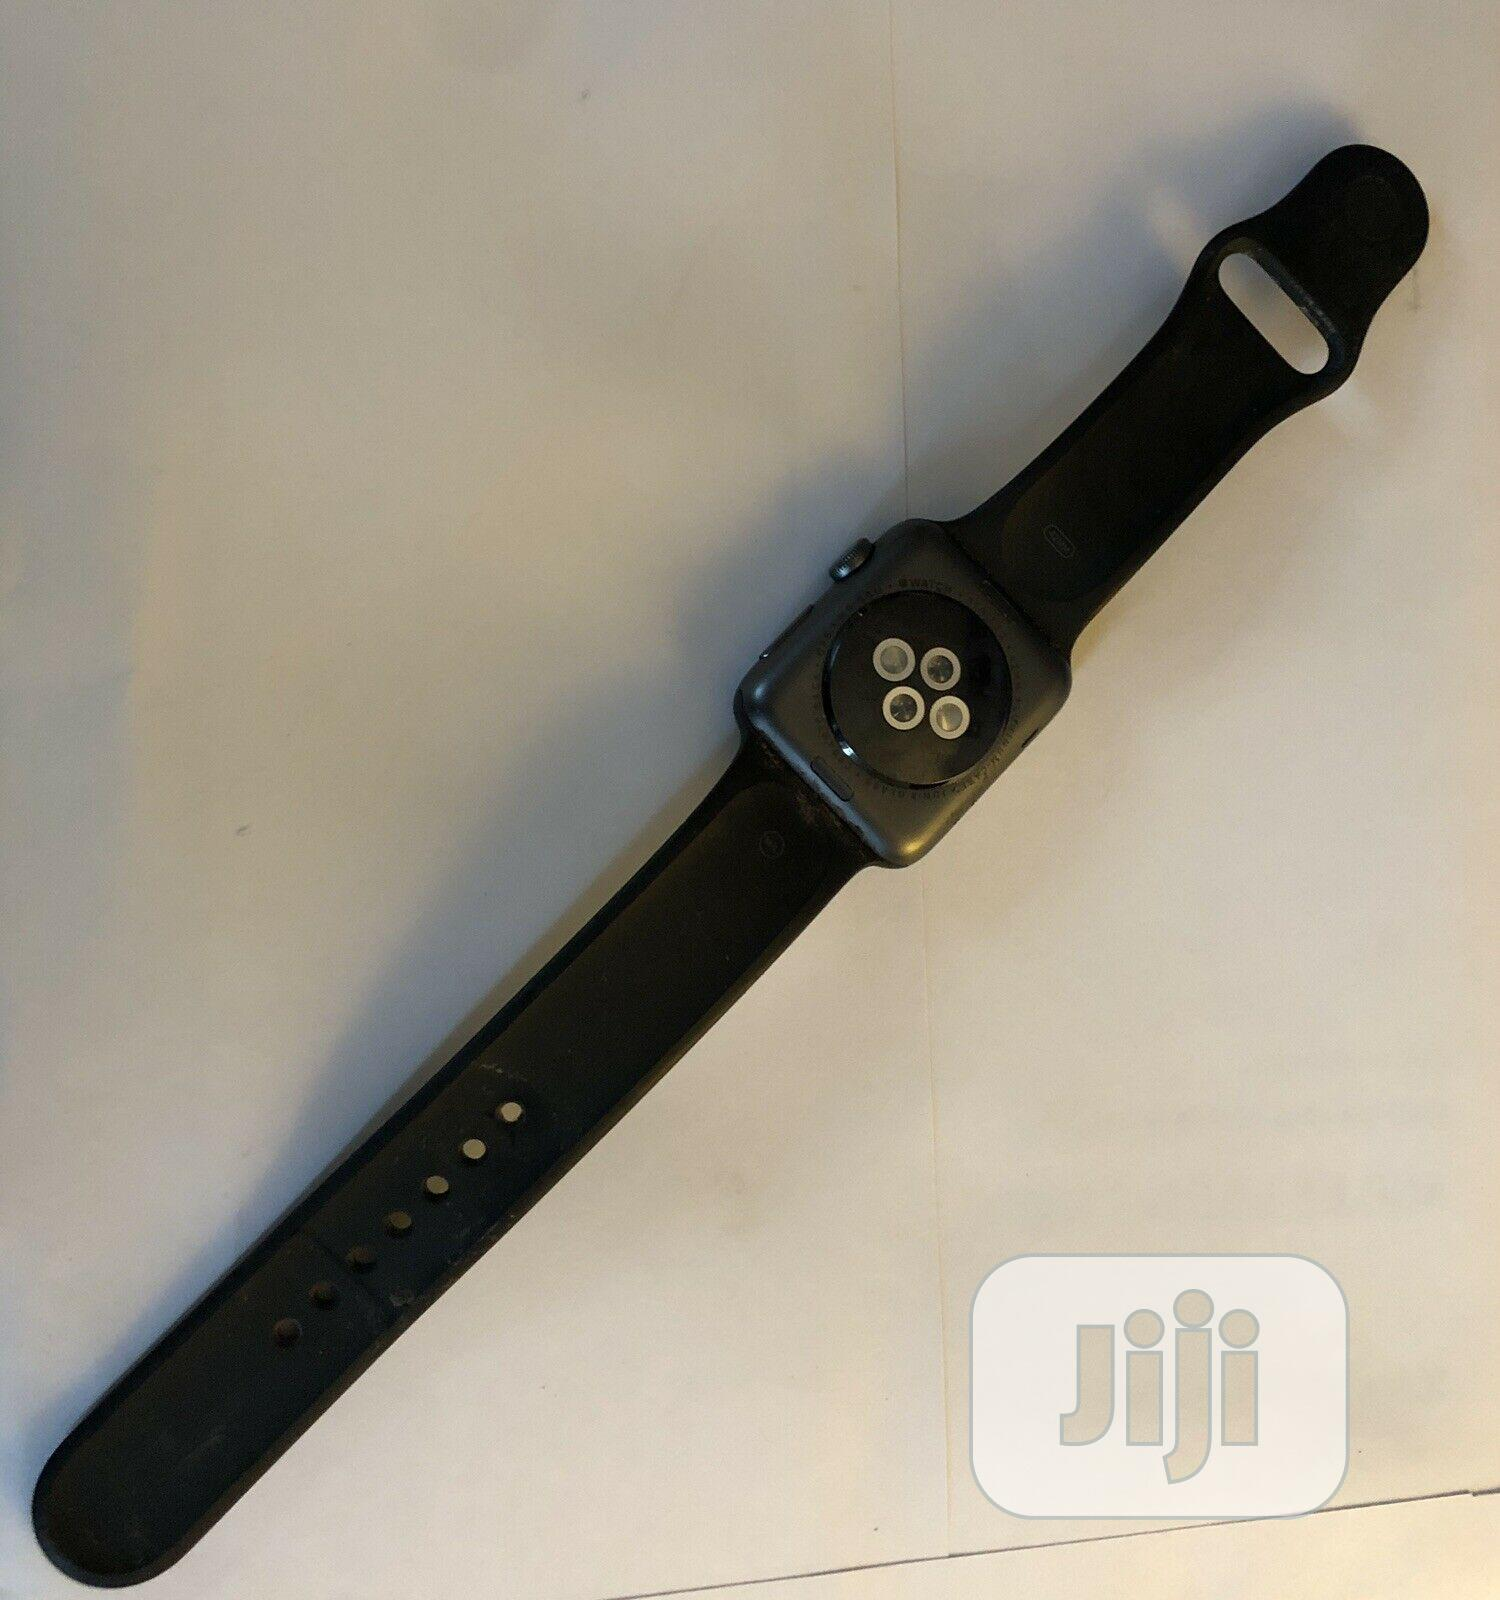 38mm Apple Watch Series 2 (Direct UK Used) | Smart Watches & Trackers for sale in Ikeja, Lagos State, Nigeria